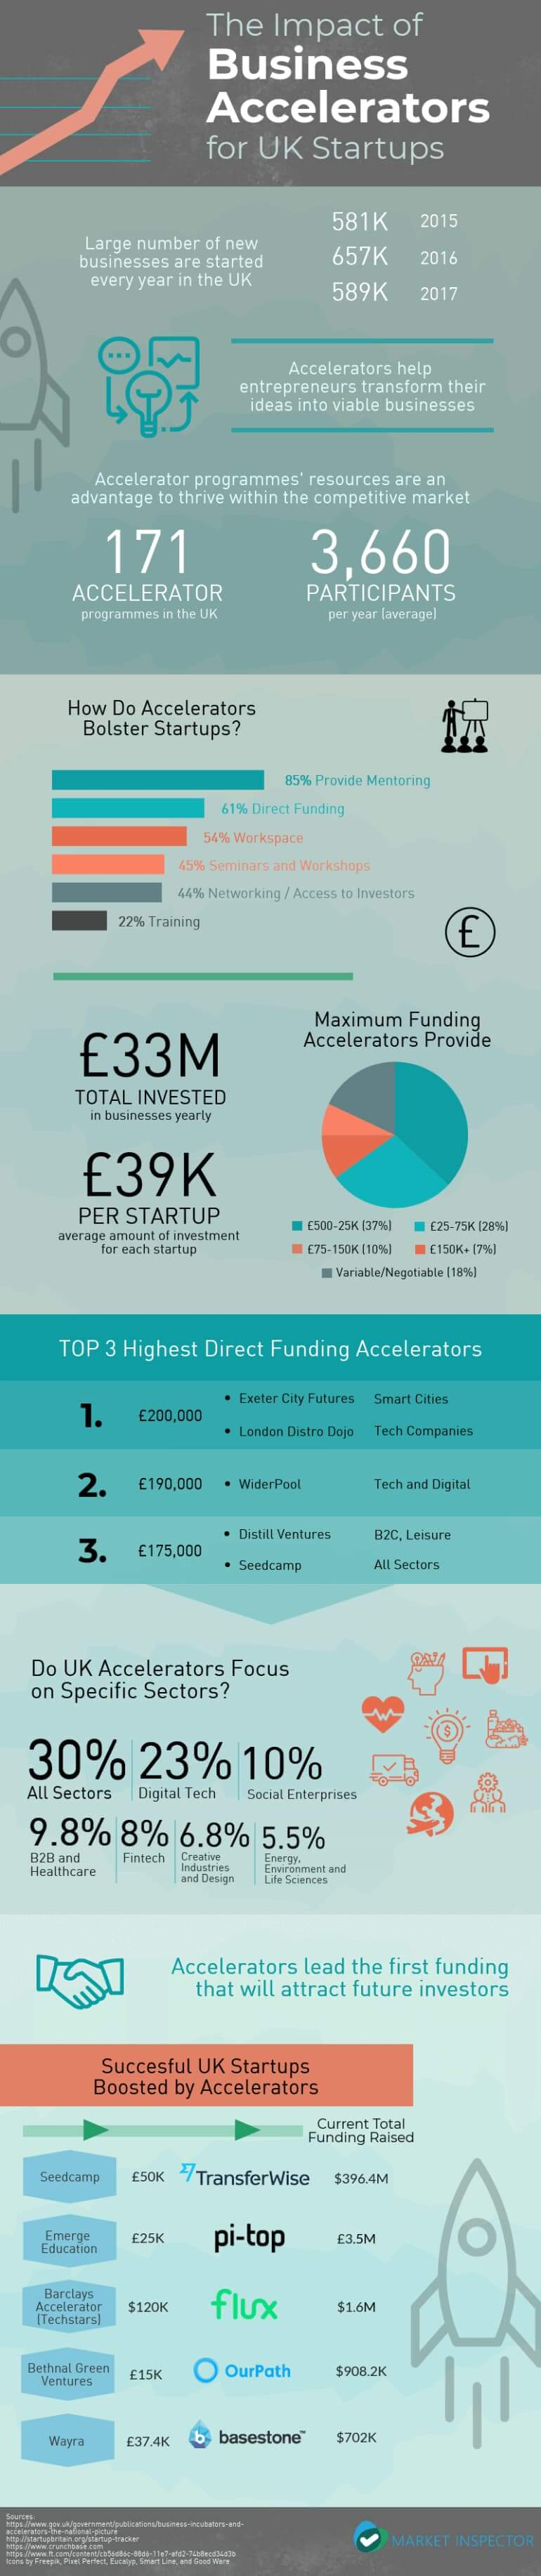 Impact Of Business Accelerators For UK Startups